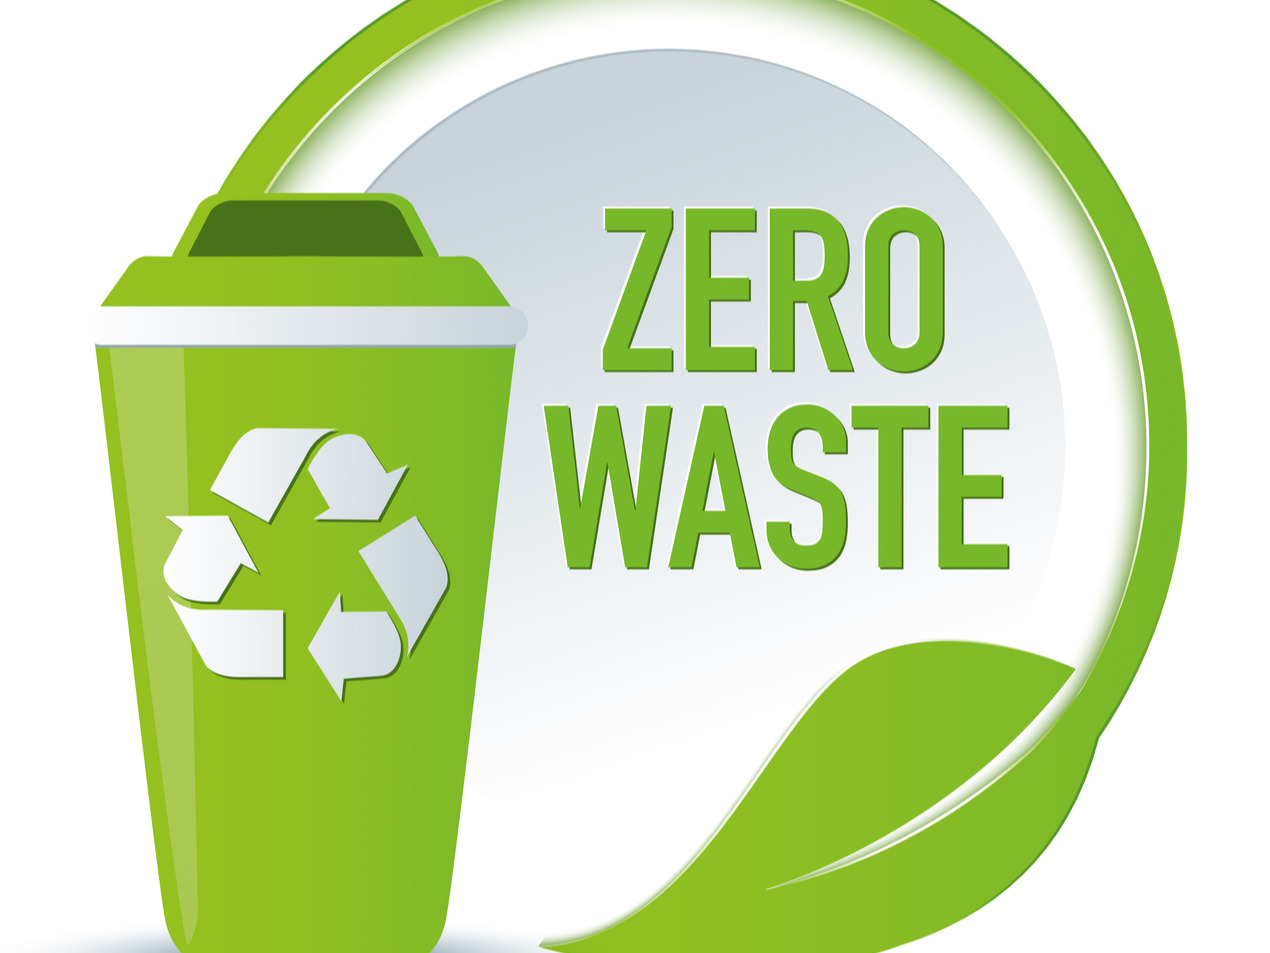 SFI promotes zero waste with e-waste recycling options